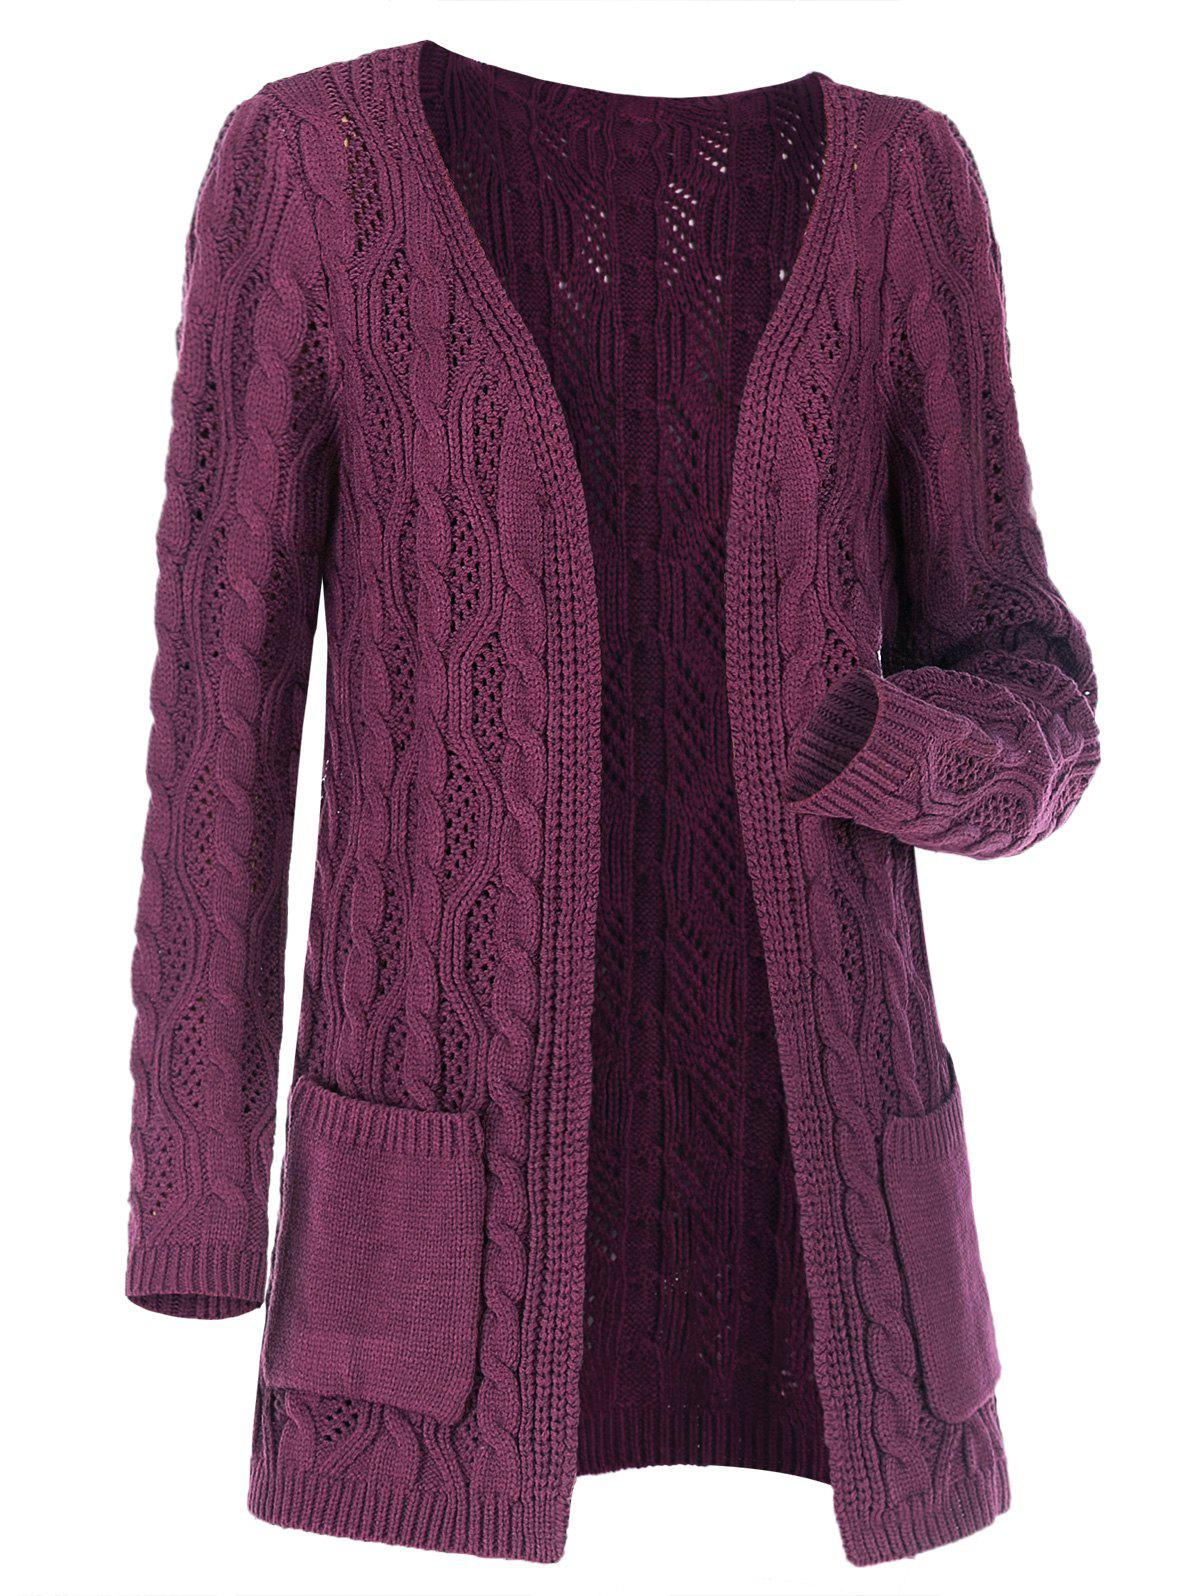 Plus Size Open Front Pocket Cable Knit Cardigan - CONCORD XXL